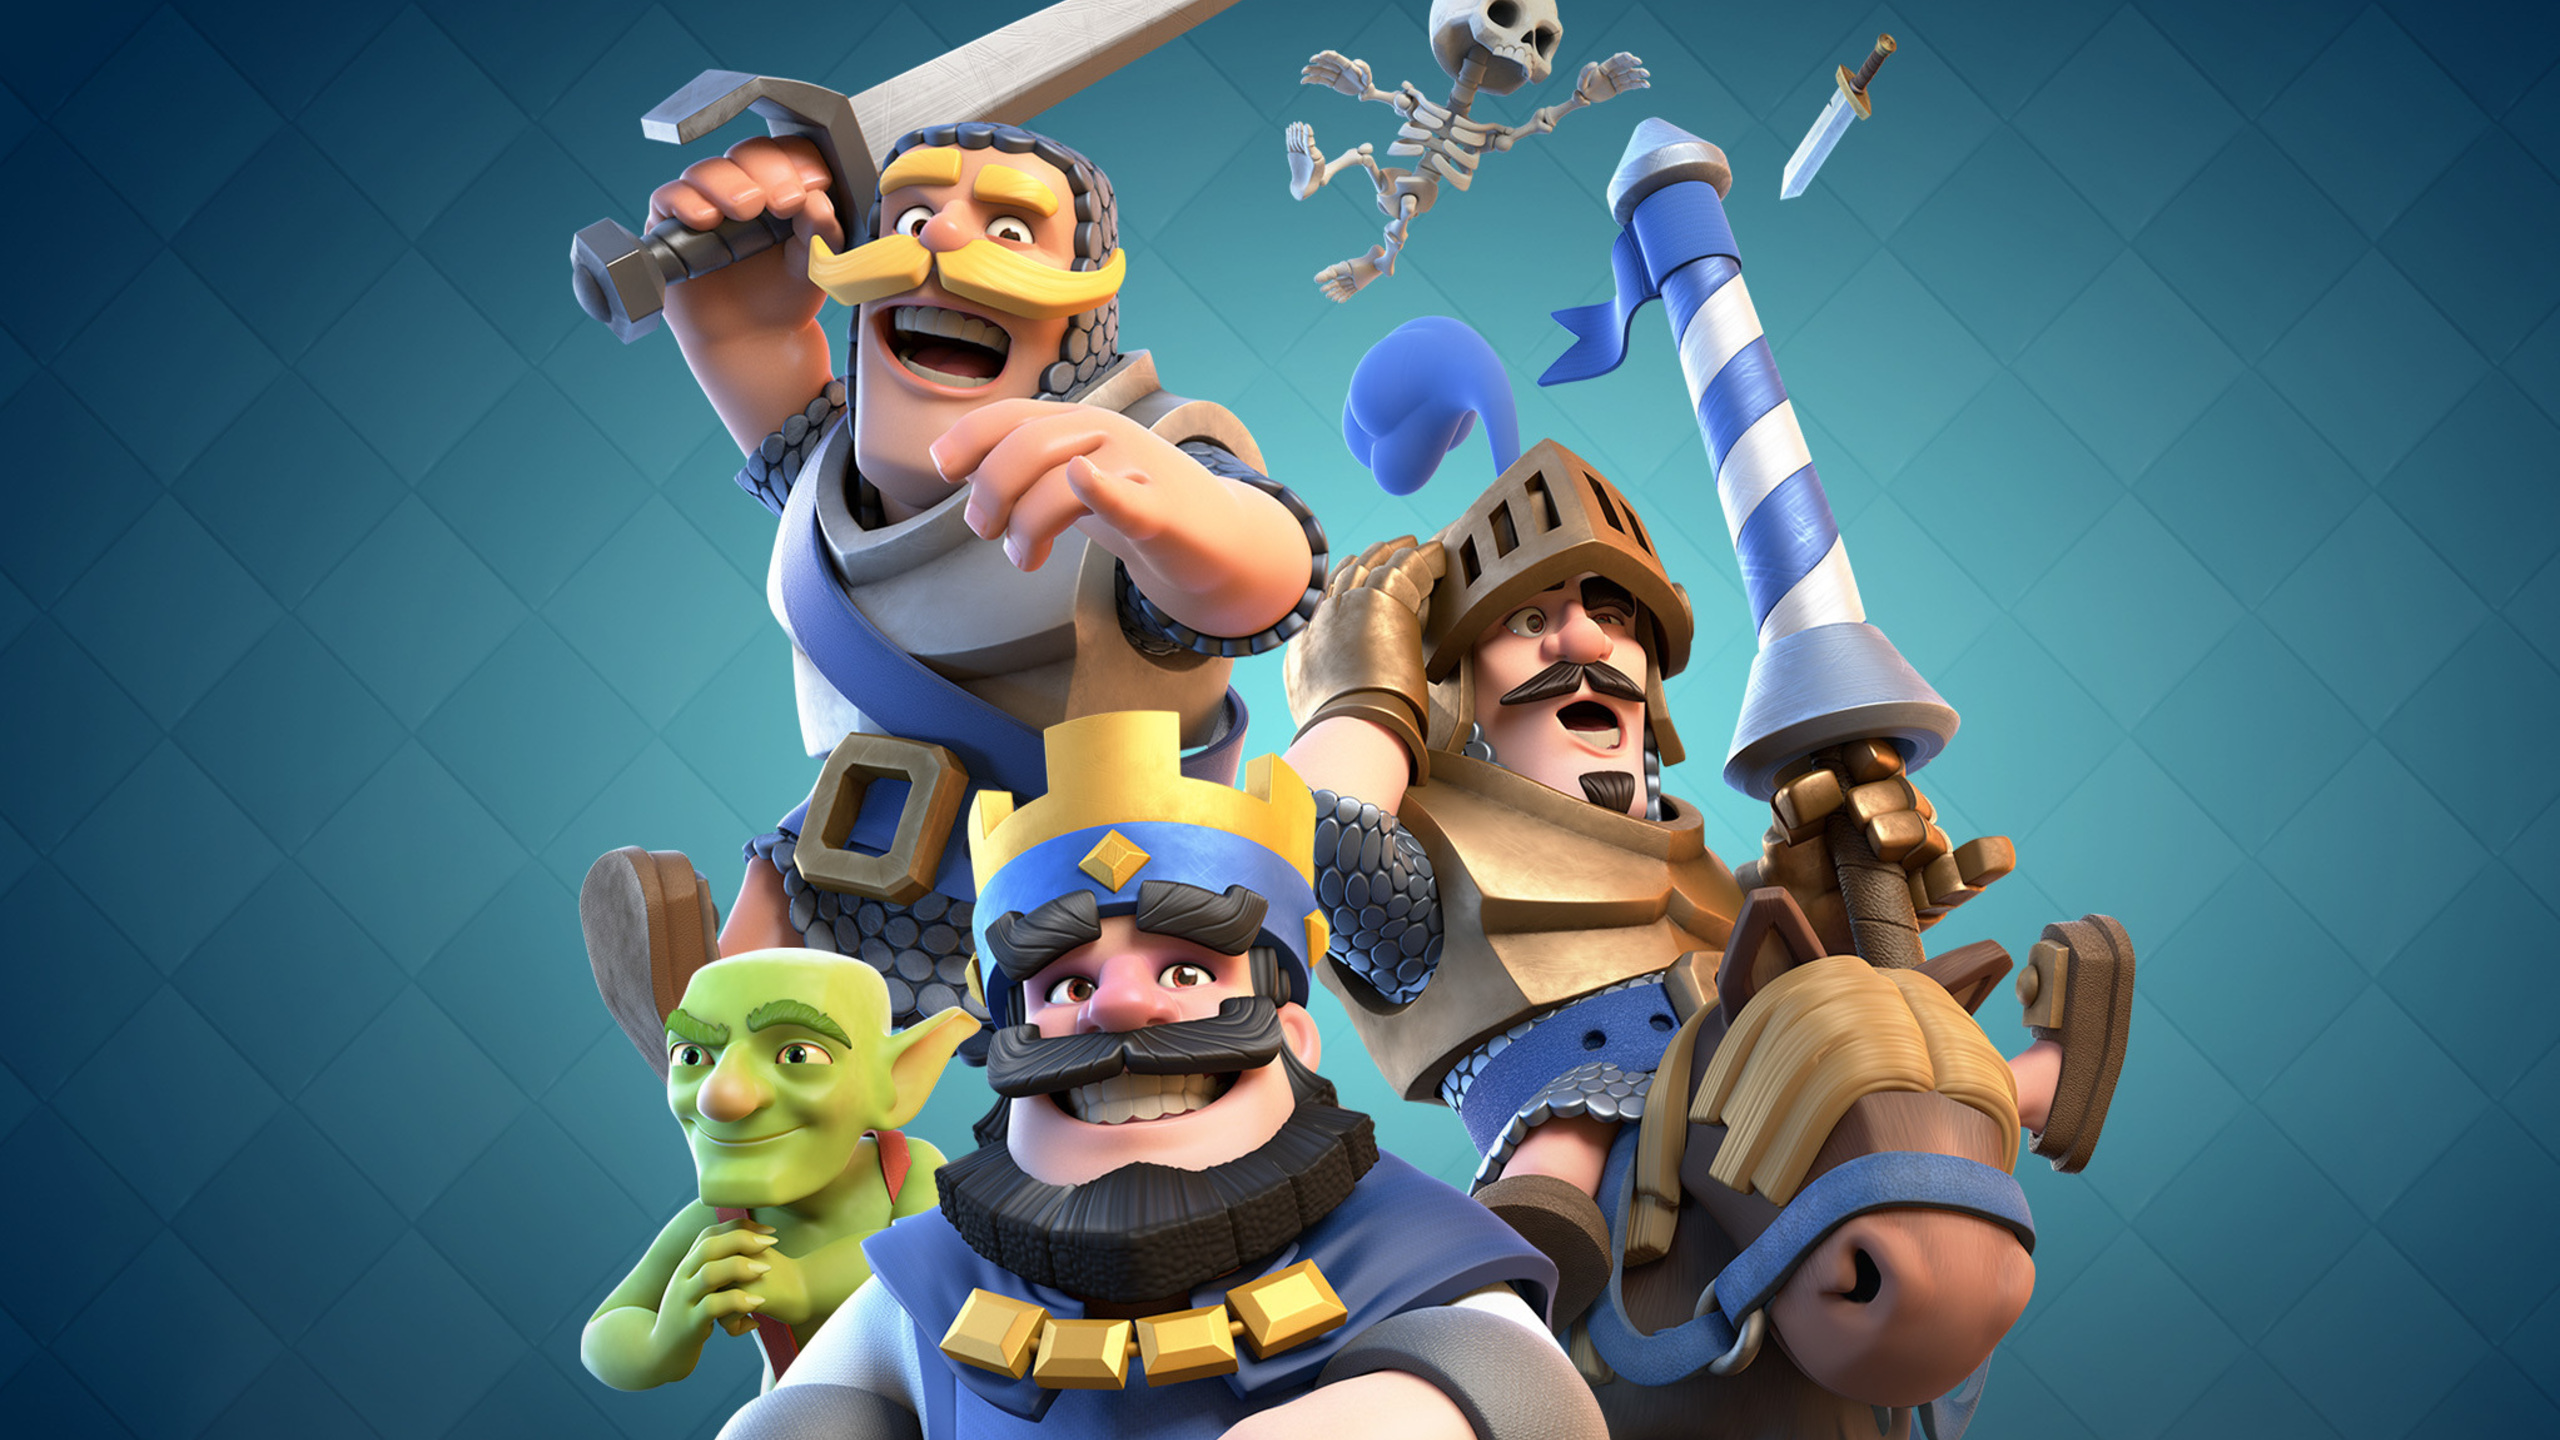 2560x1440 clash royale 2016 1440p resolution hd 4k wallpapers images backgrounds photos and - Clash royale 2560x1440 ...